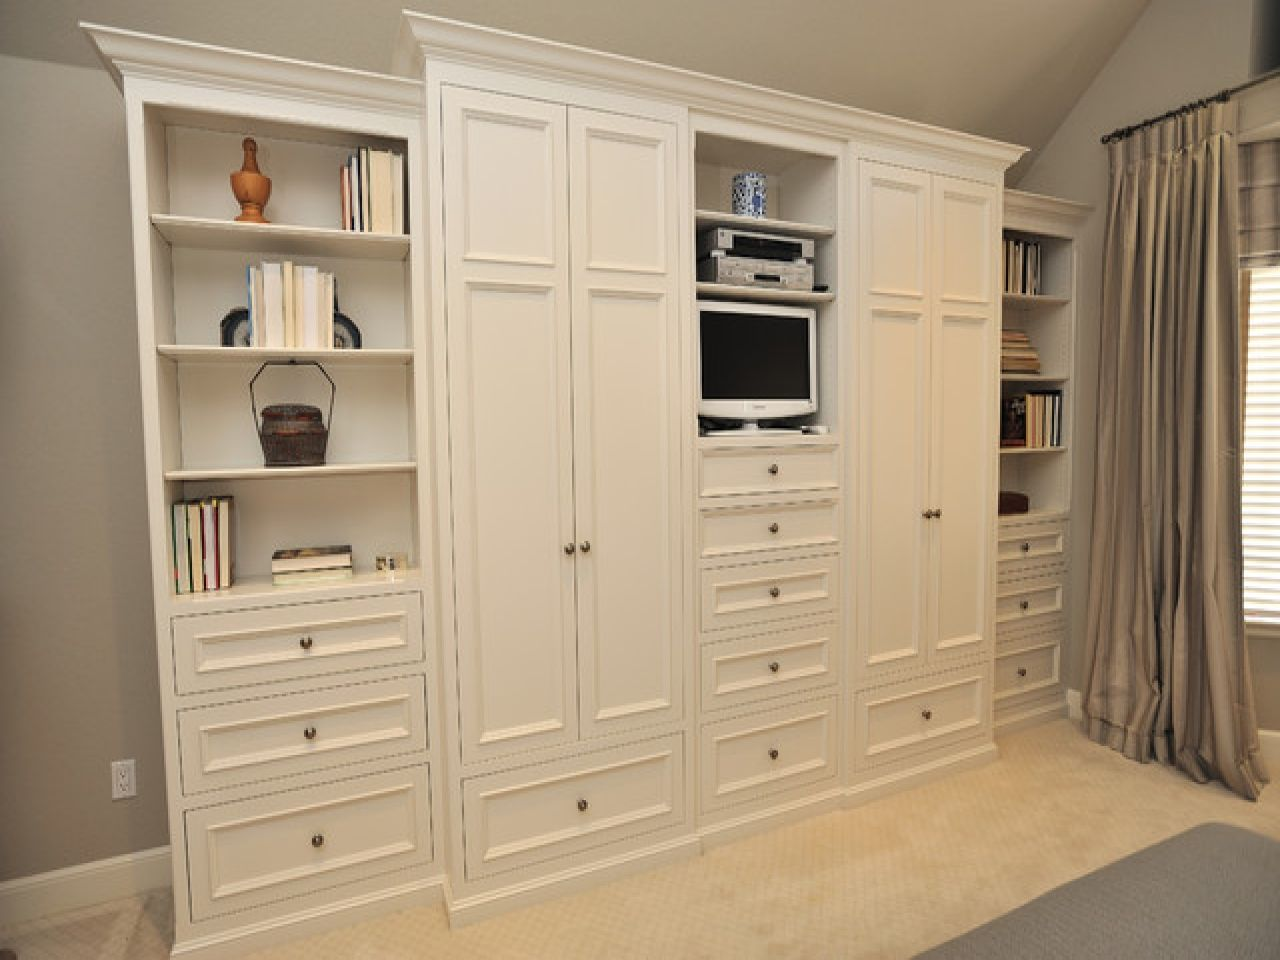 Wall Units For Storage Bedroomwallunitswithdrawersmasterbedroomwallstoragewhite